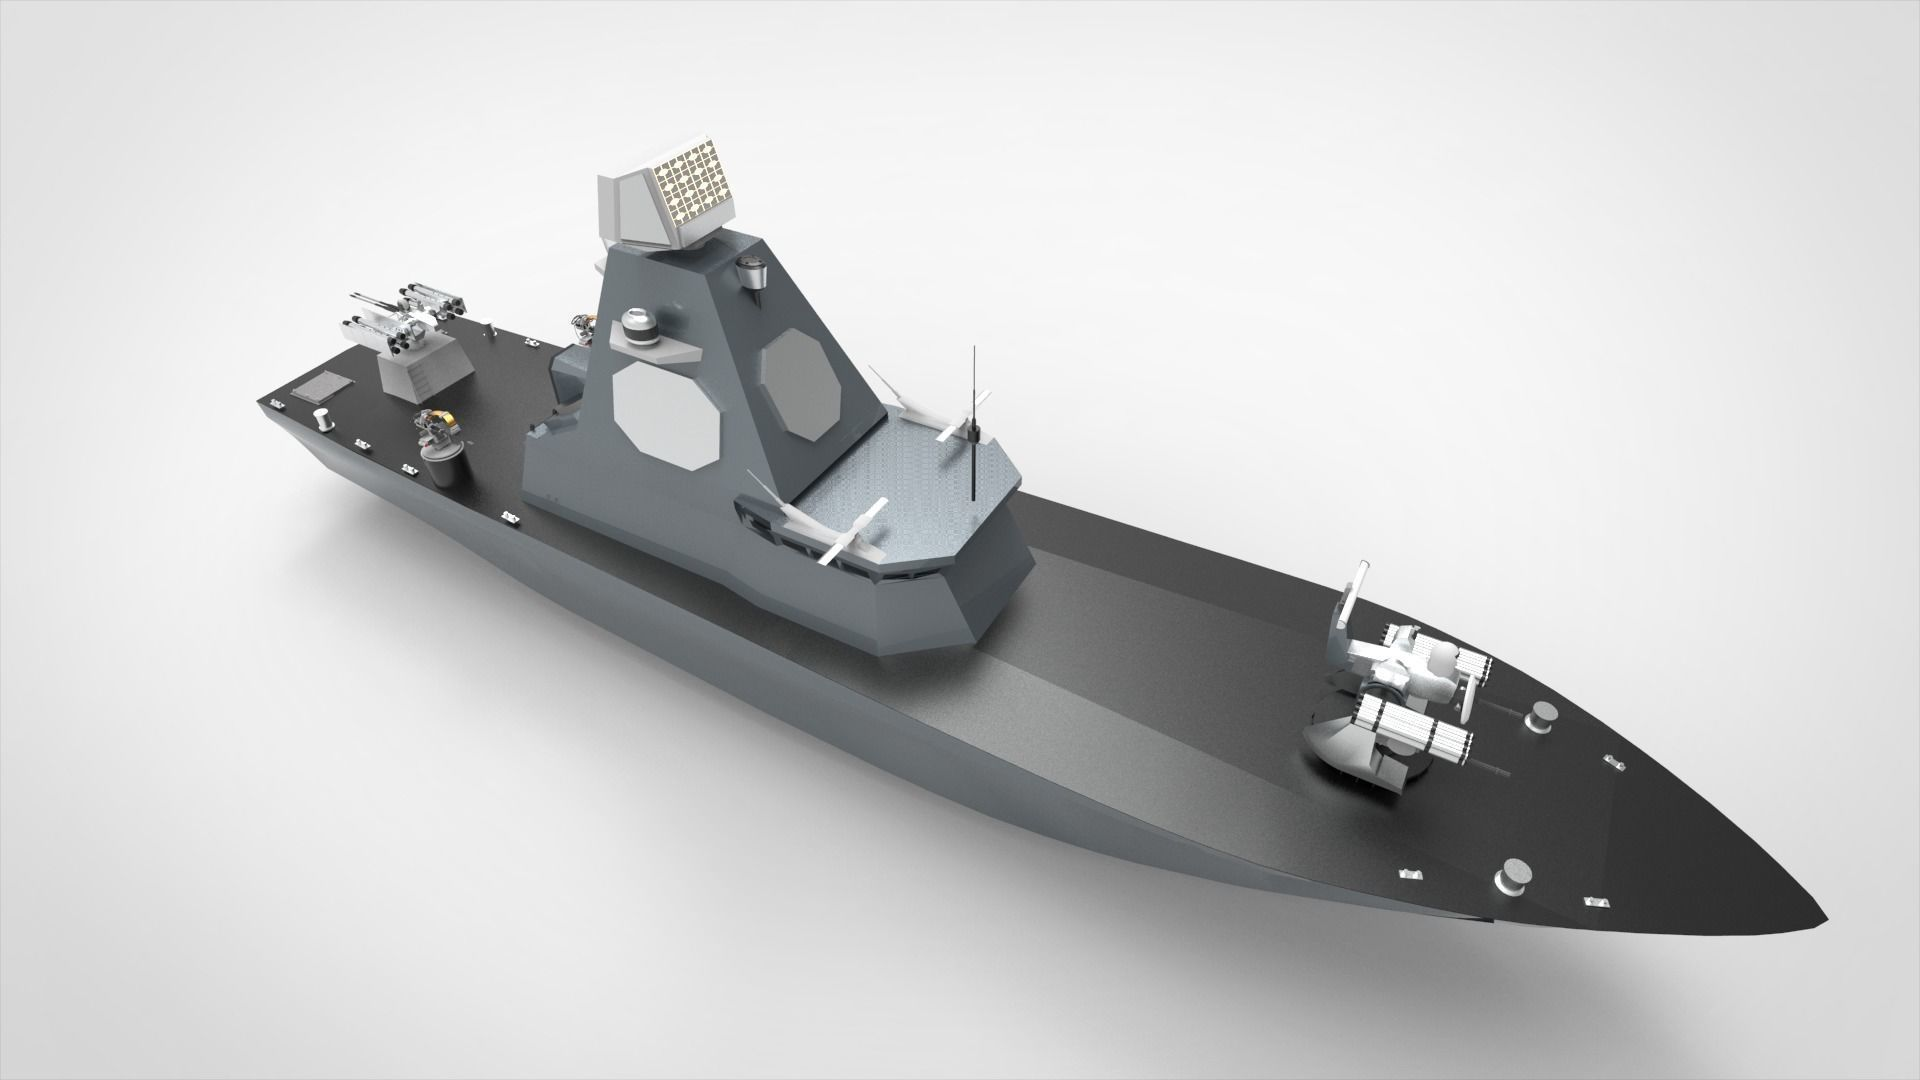 Unmanned surface vehicles USV